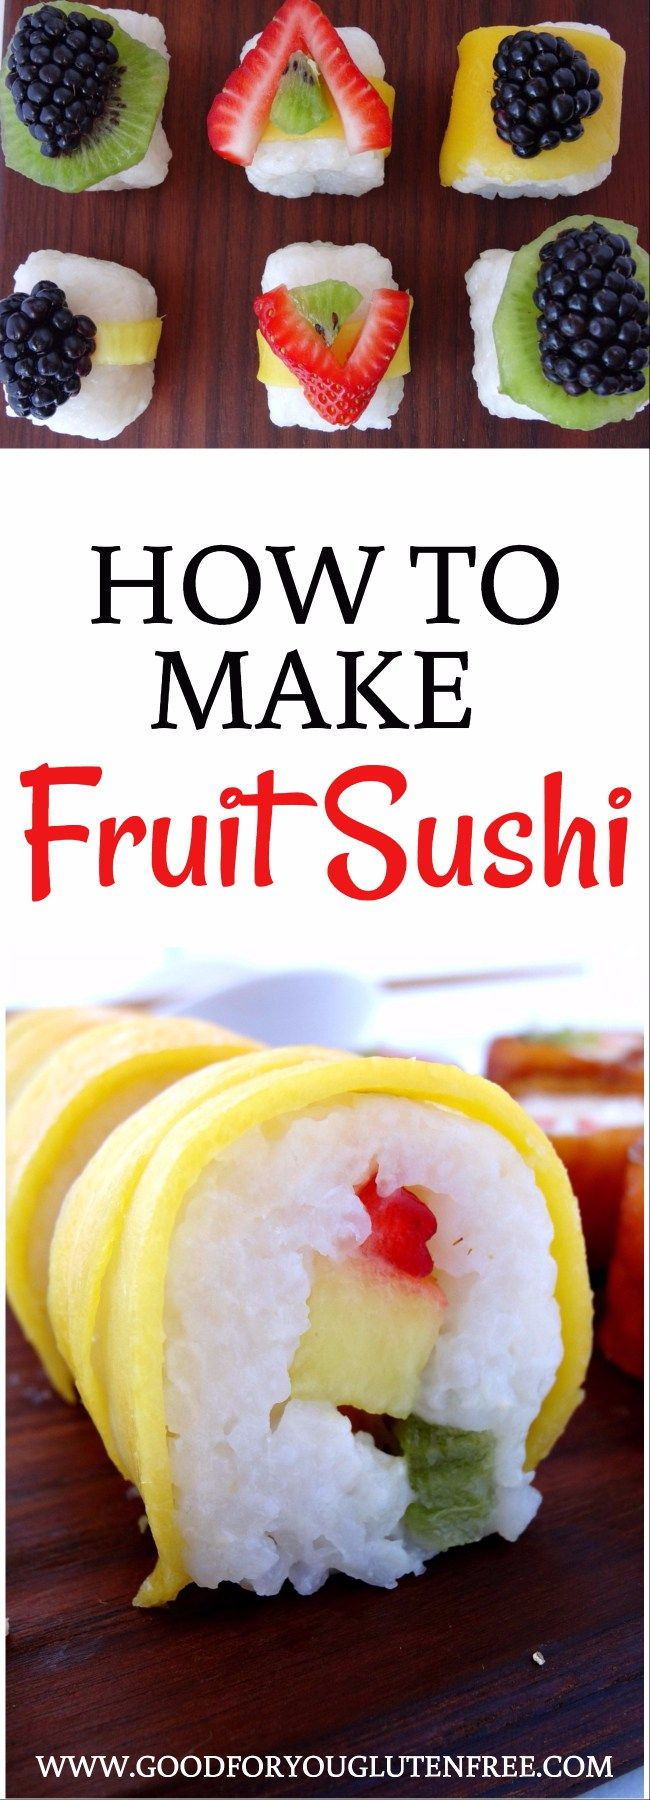 How to Make Fruit Sushi - Good For You Gluten Free